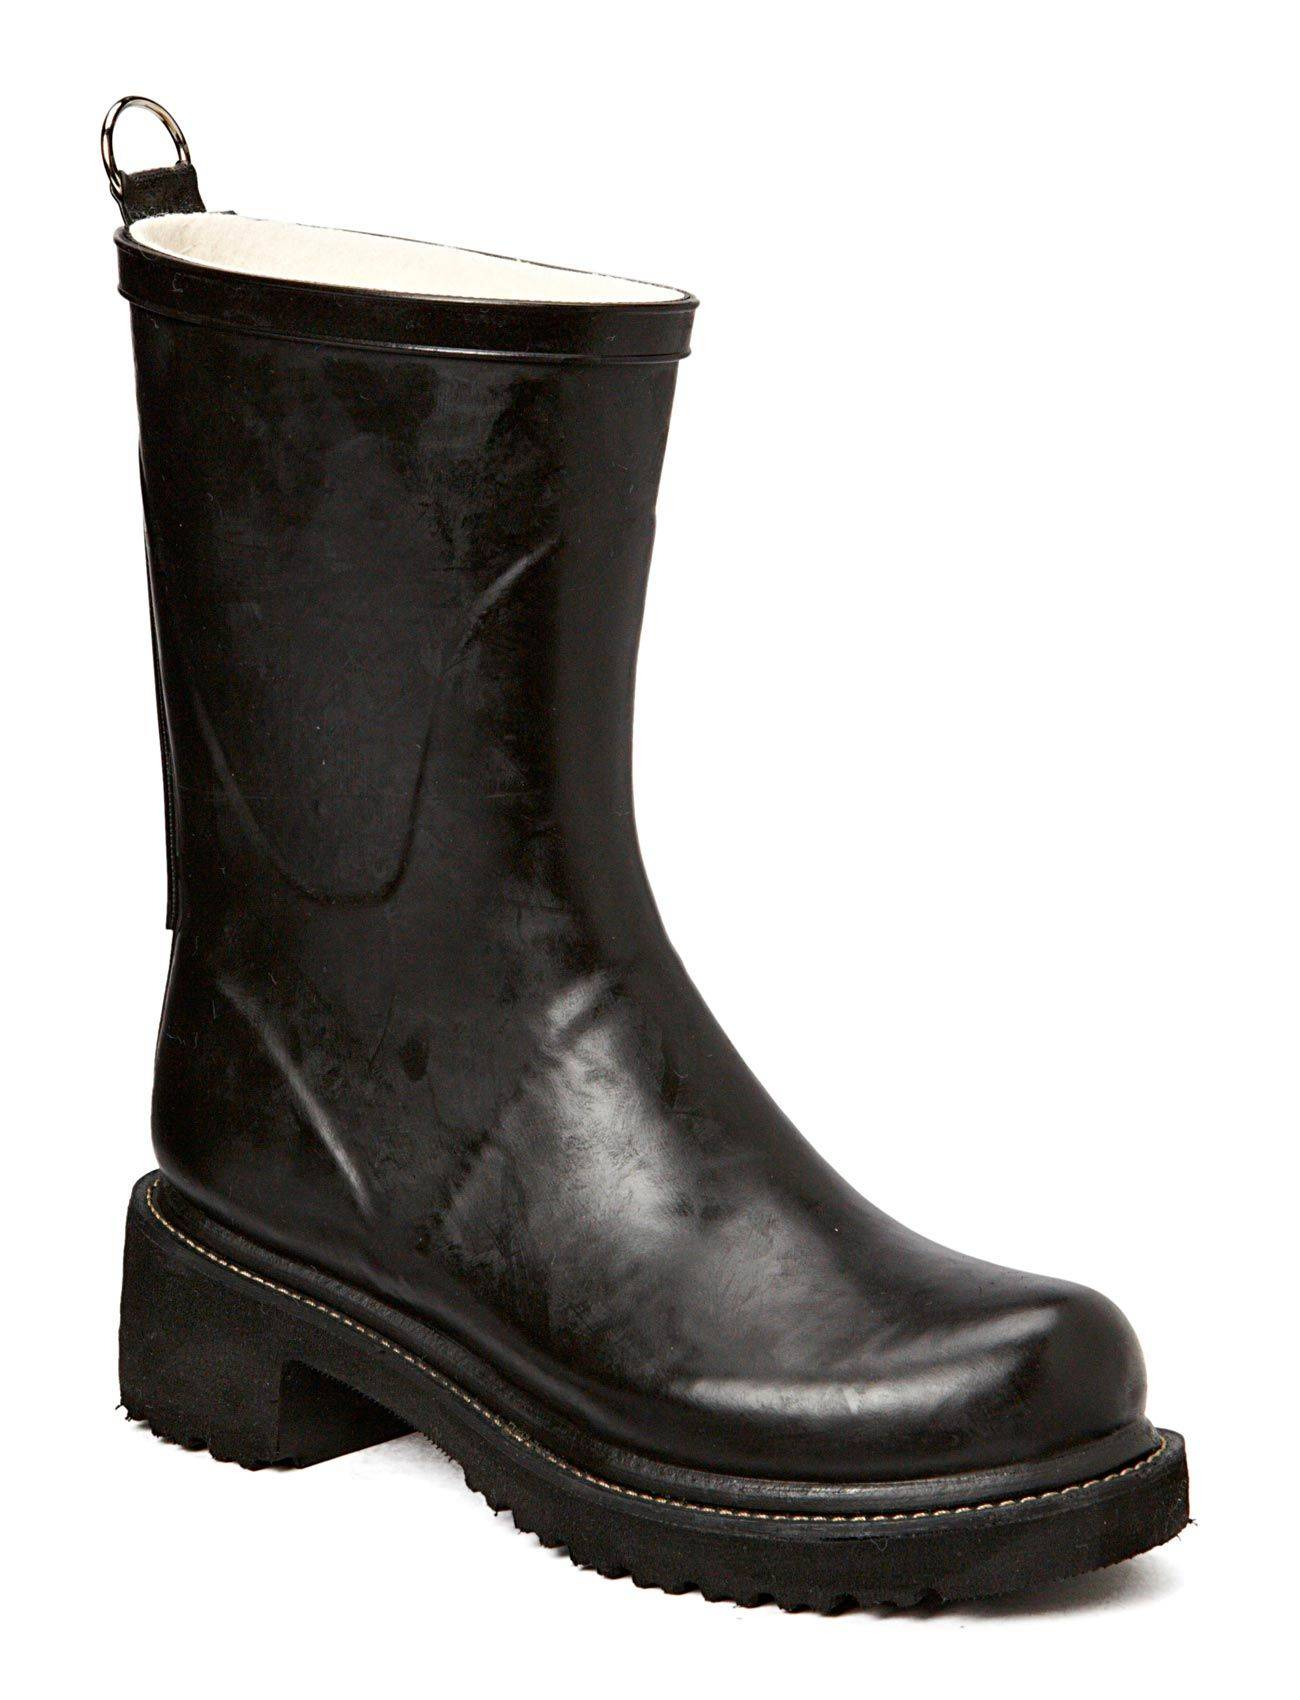 Ilse Jacobsen Rain Boots - Mid Calf With High Heel